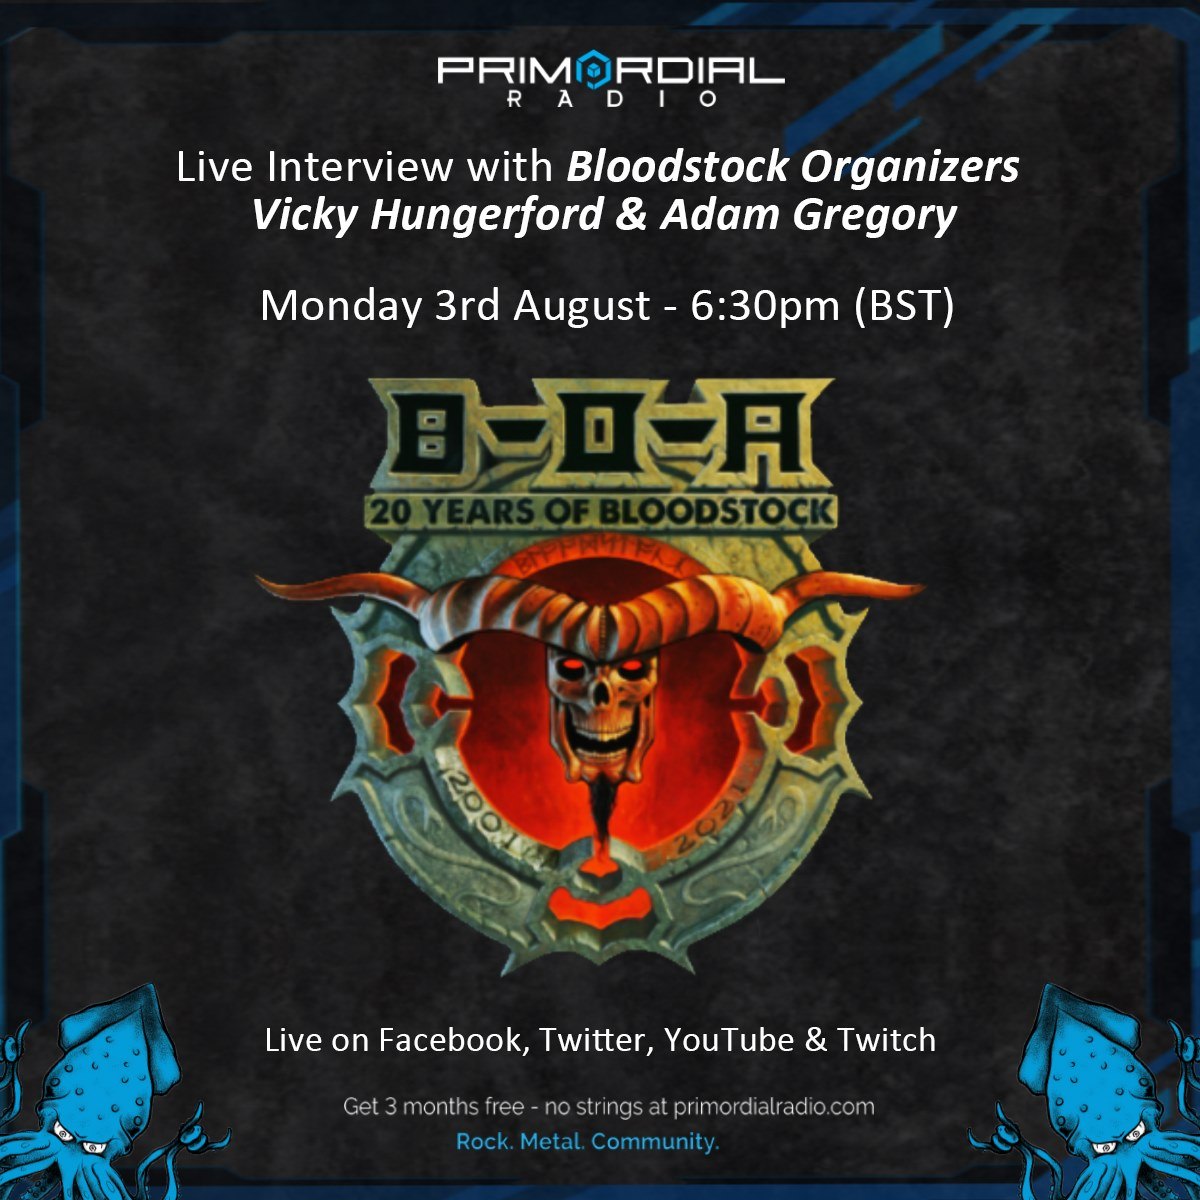 Video Interview with Bloodstock Organisers Vicky Hungerford and Adam Gregory